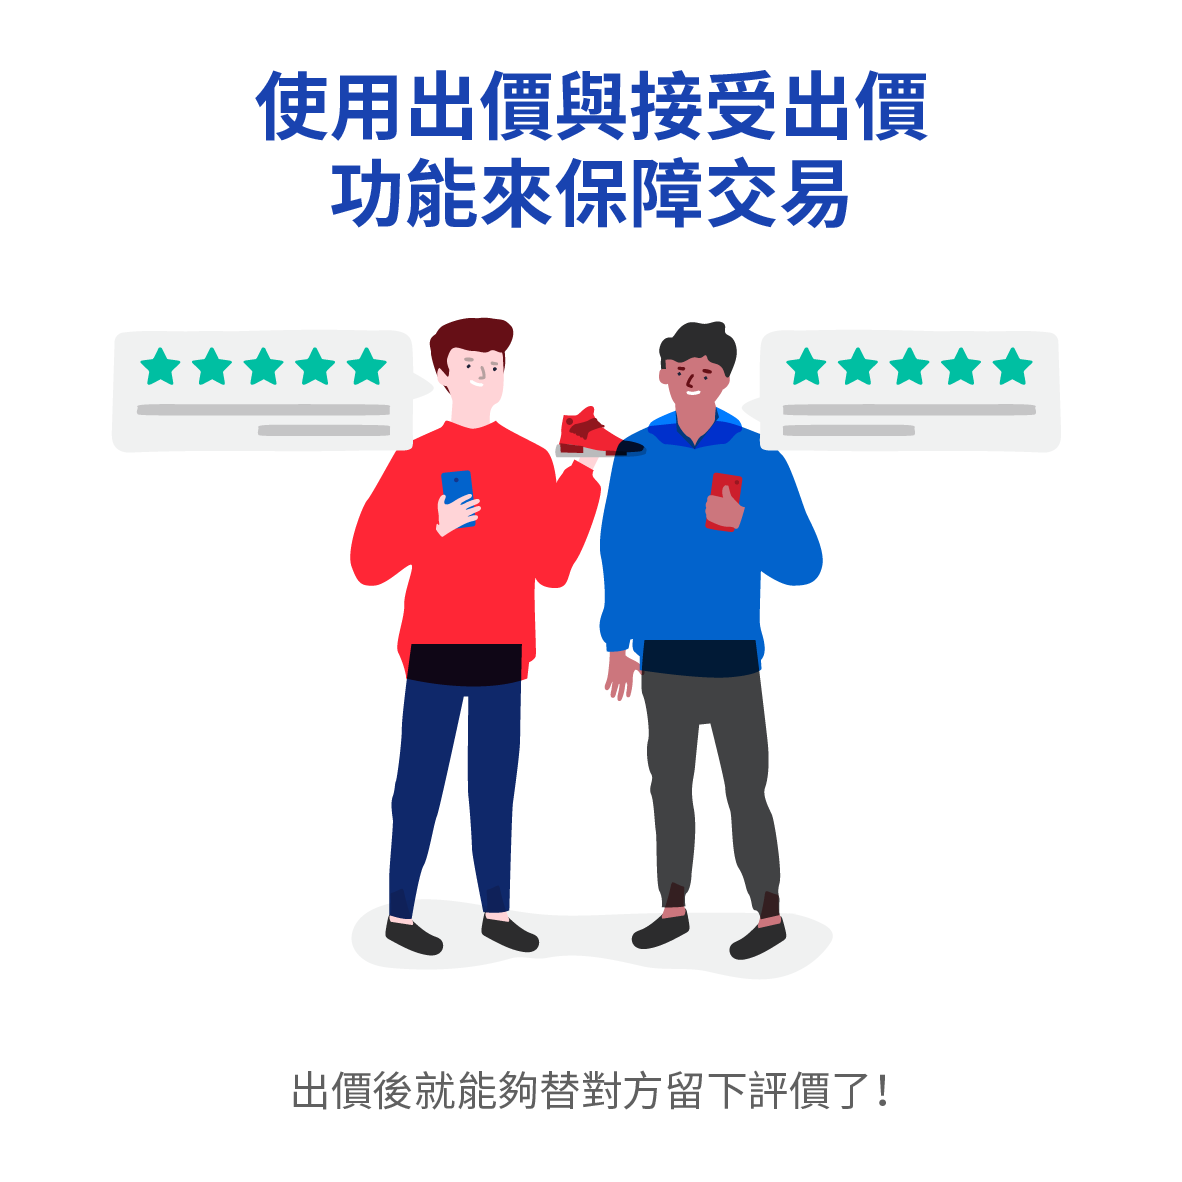 HelpCentre_How-to-deal-safely-on-Carousell_TW-3.png